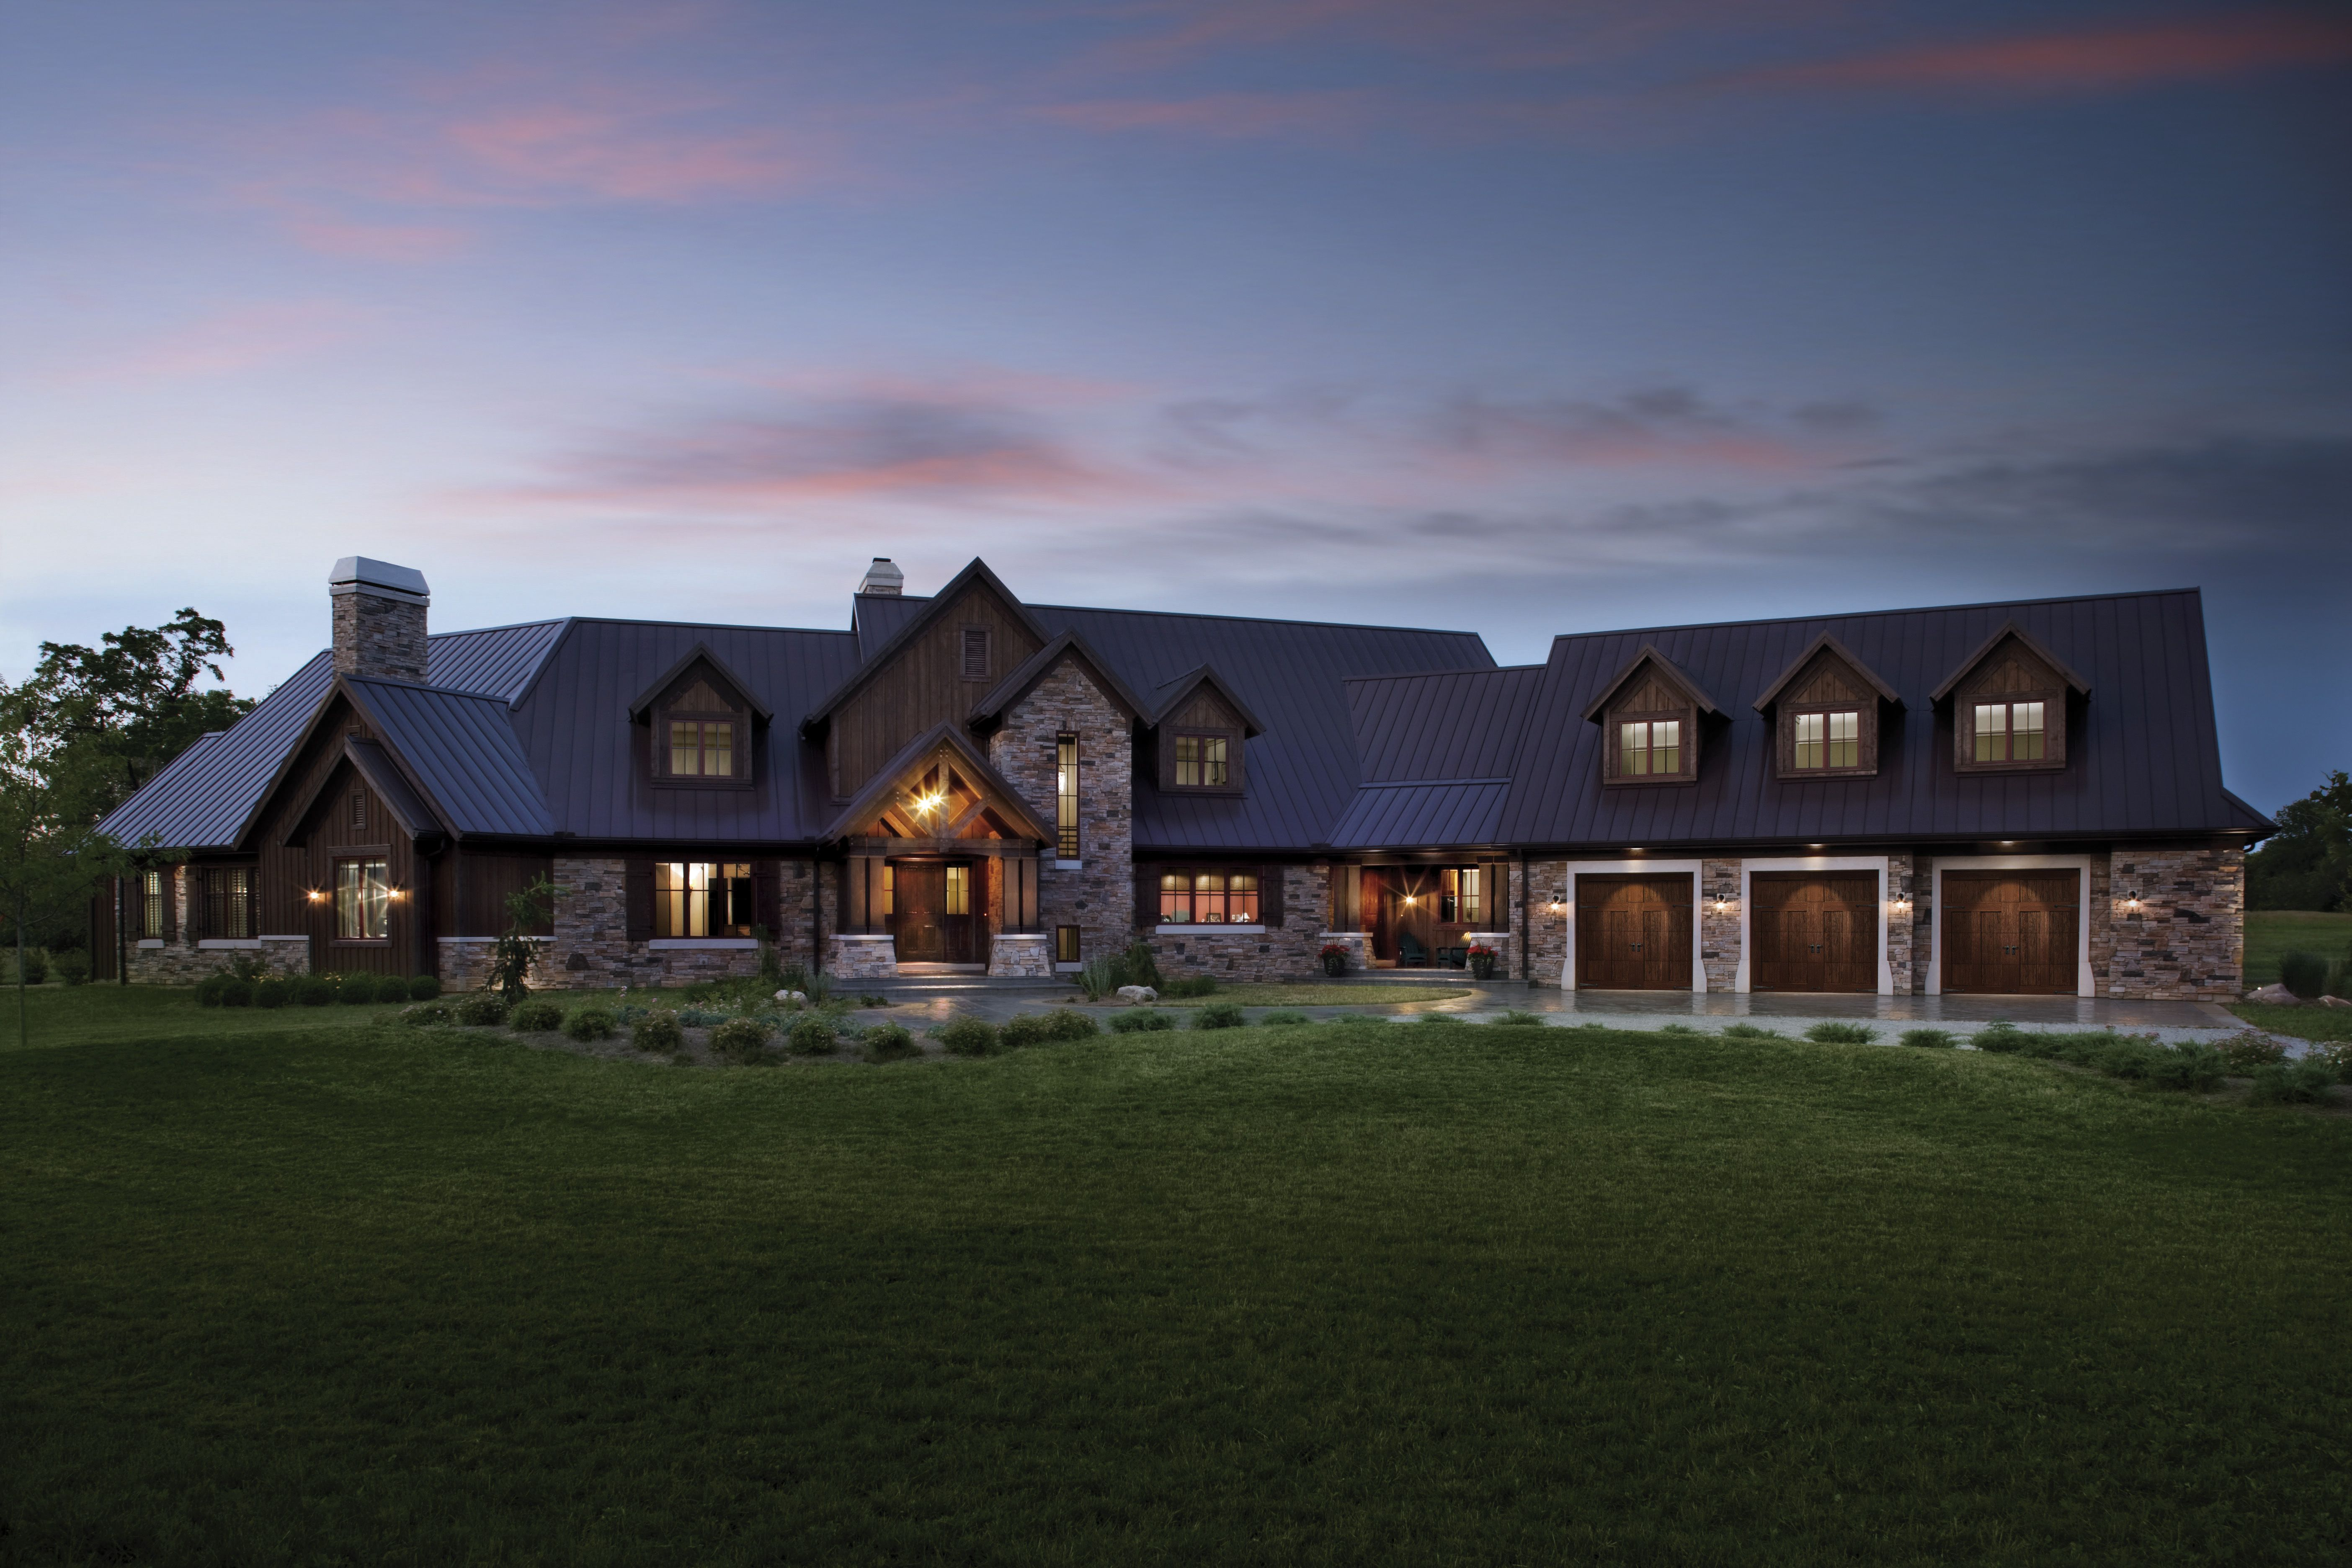 Canyon Ridge Limited Edition | Carriage house garage doors ...